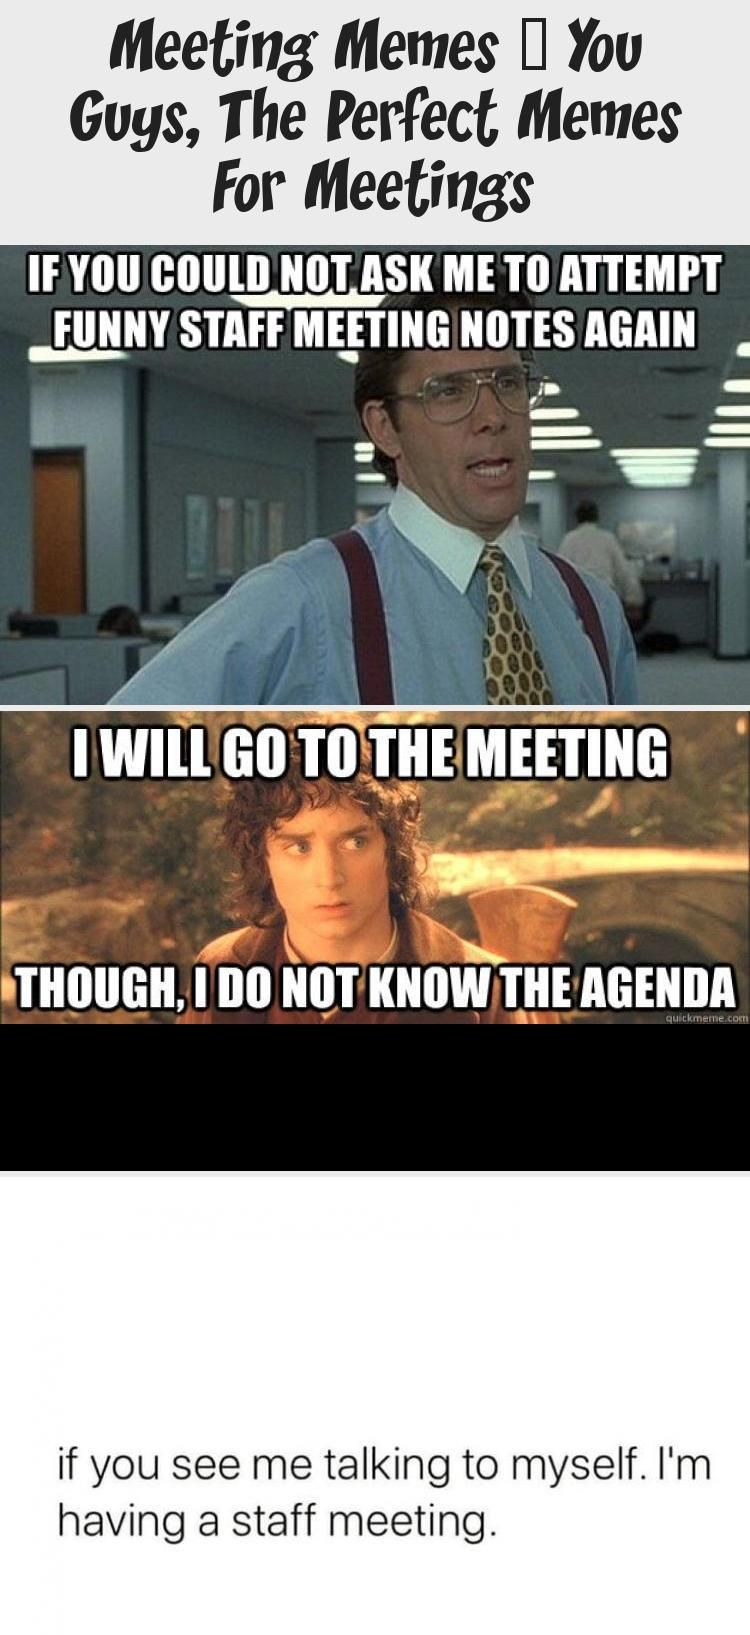 Meeting Memes You Guys The Perfect Memes For Meetings Humor Meeting Memes Meetings Humor Humor